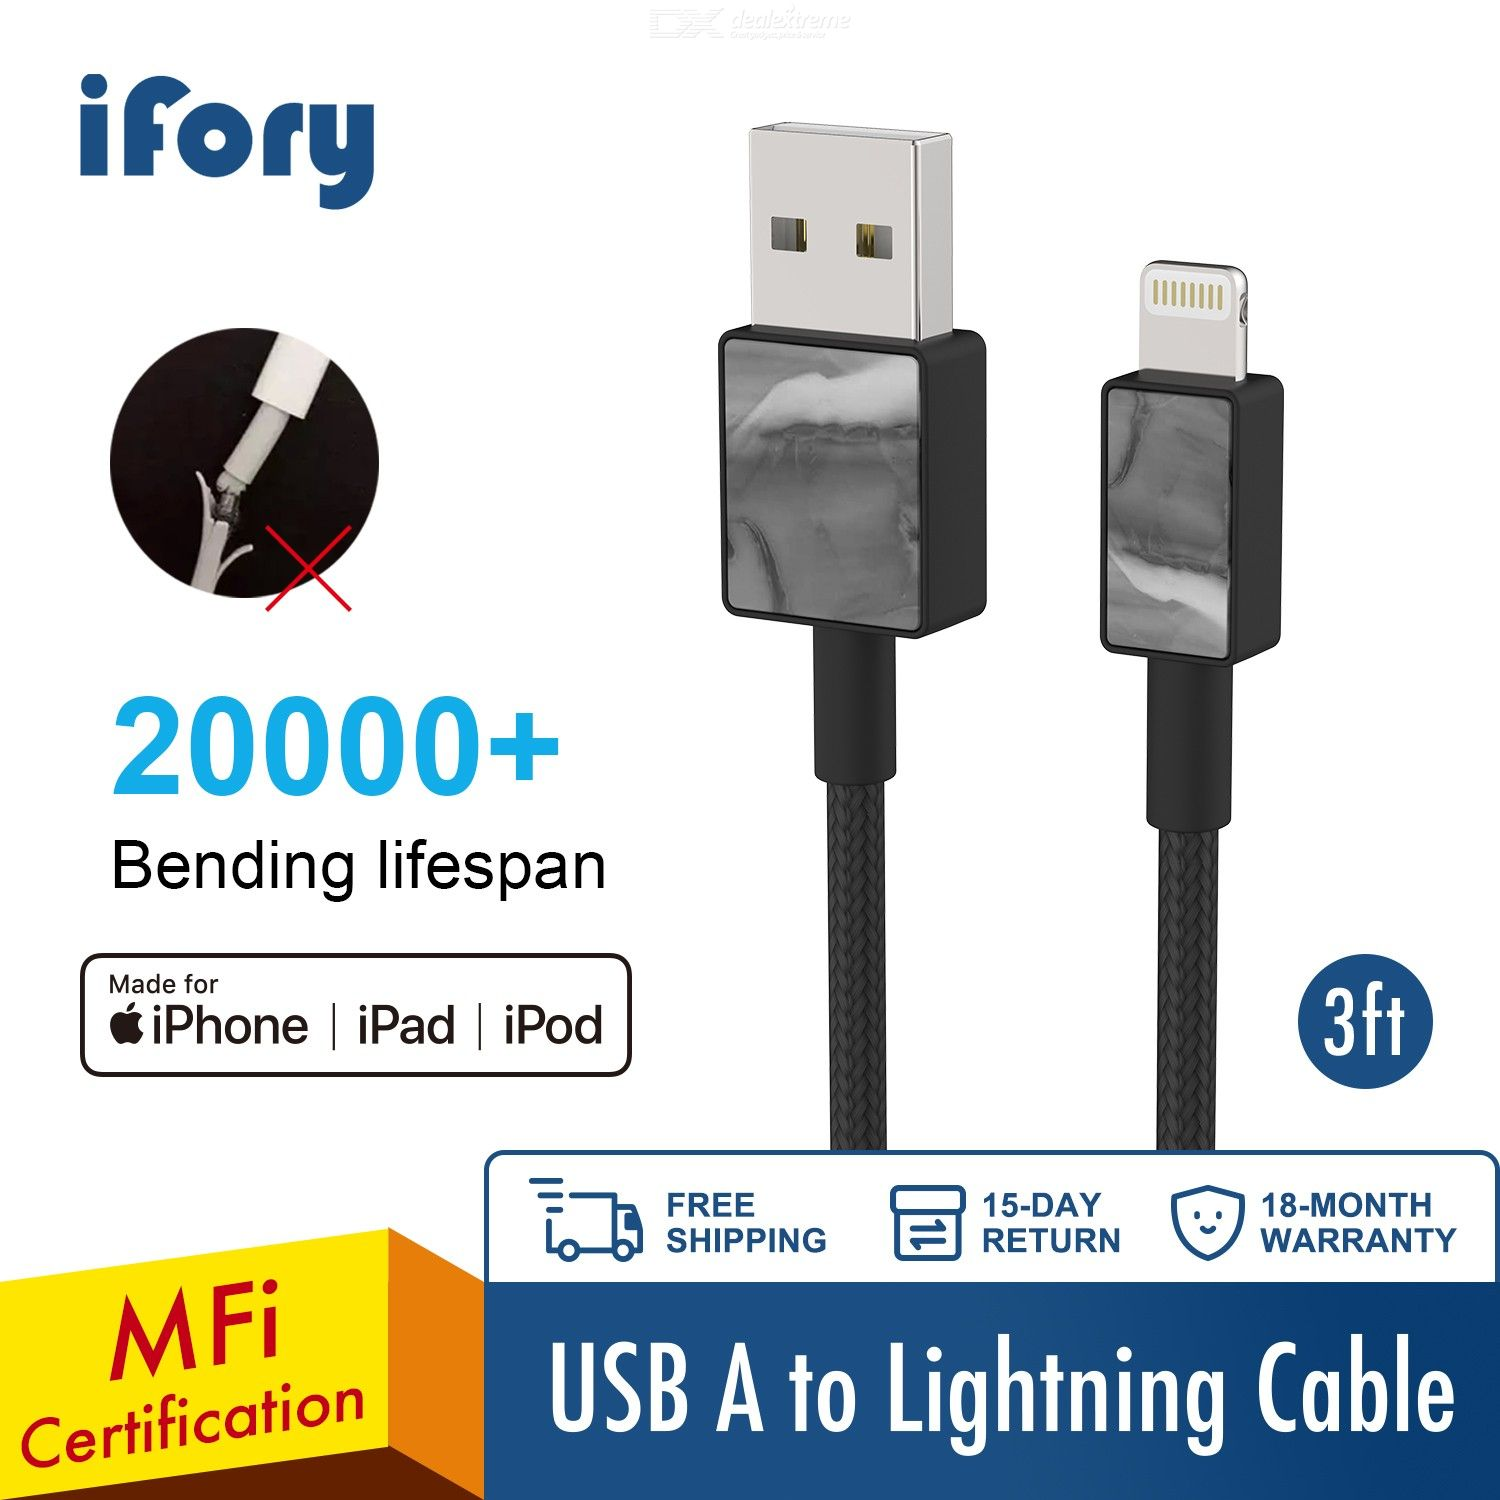 MFI iPhone Charger, iFory Lightning Cable 3ft, Heavy Nylon Braided USB A to Lightning Charging Cable Sturdy Cord 20000+ Lifespan